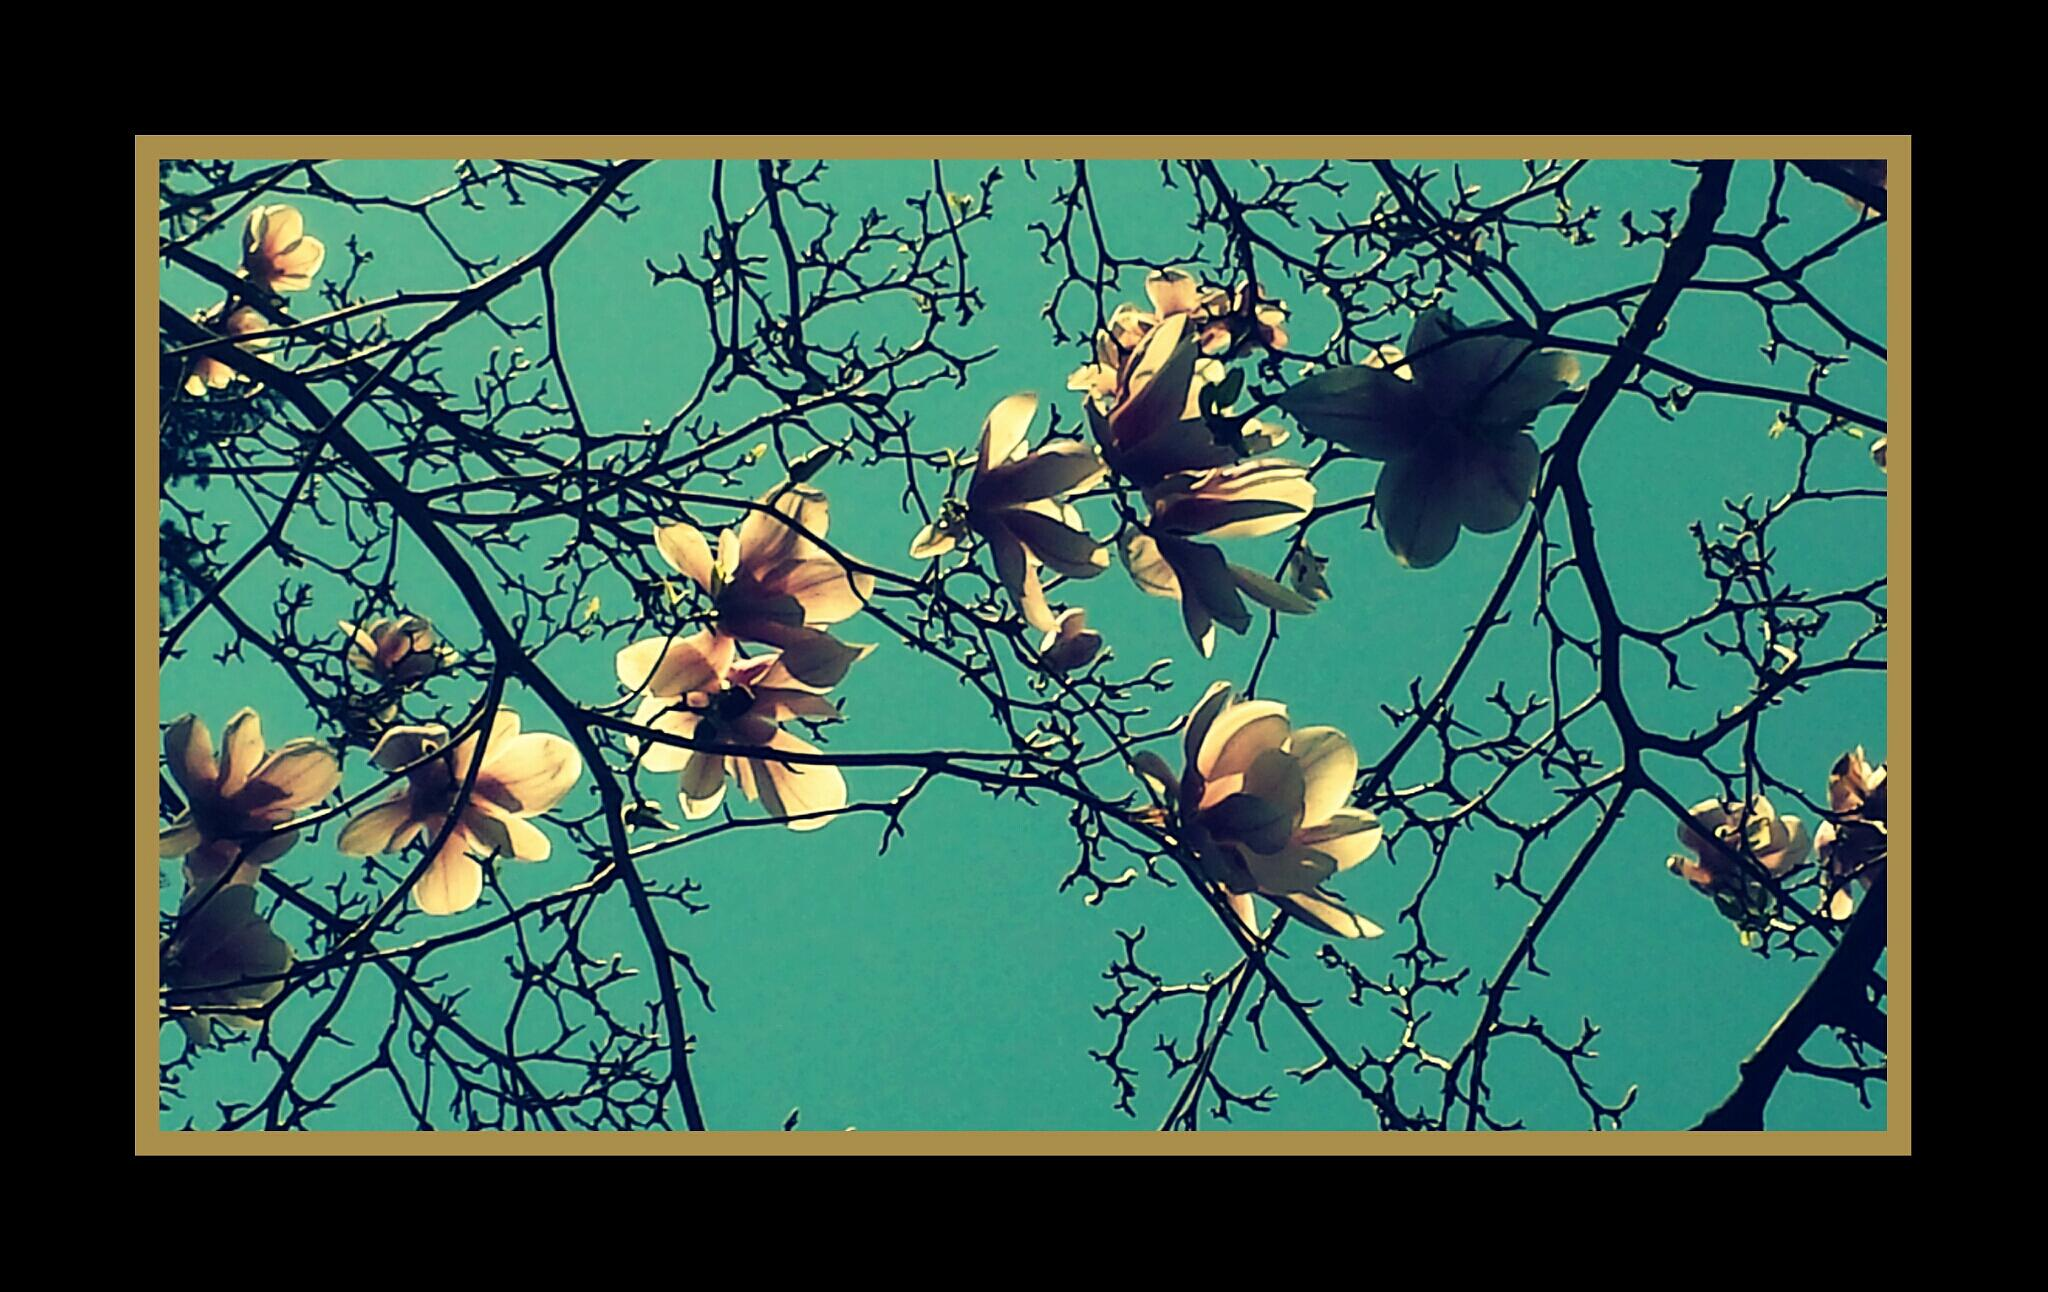 The Old Magnolia by mimi.difrancesca